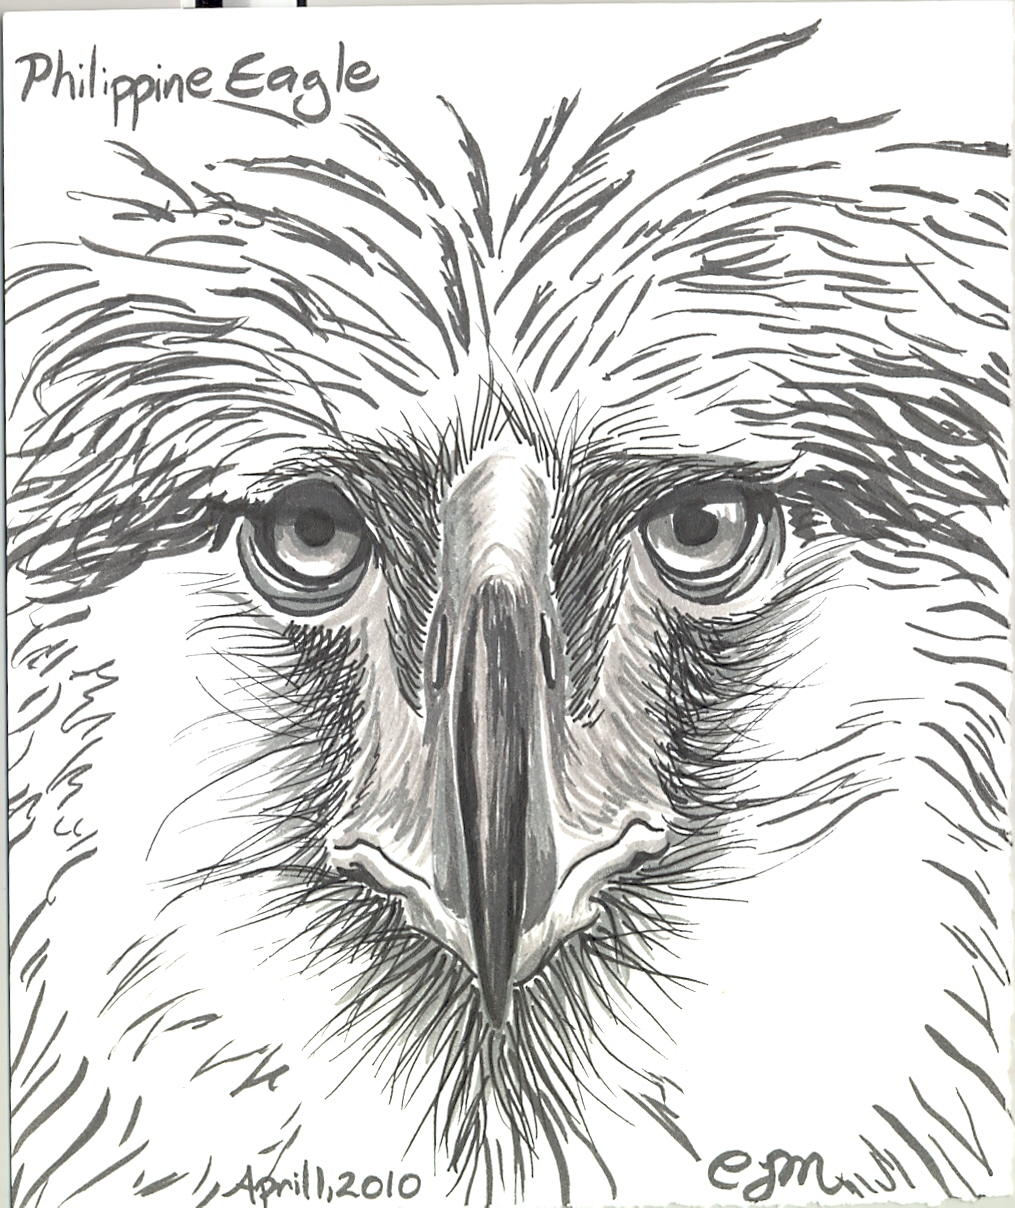 phillipine eagle coloring pages - photo#17